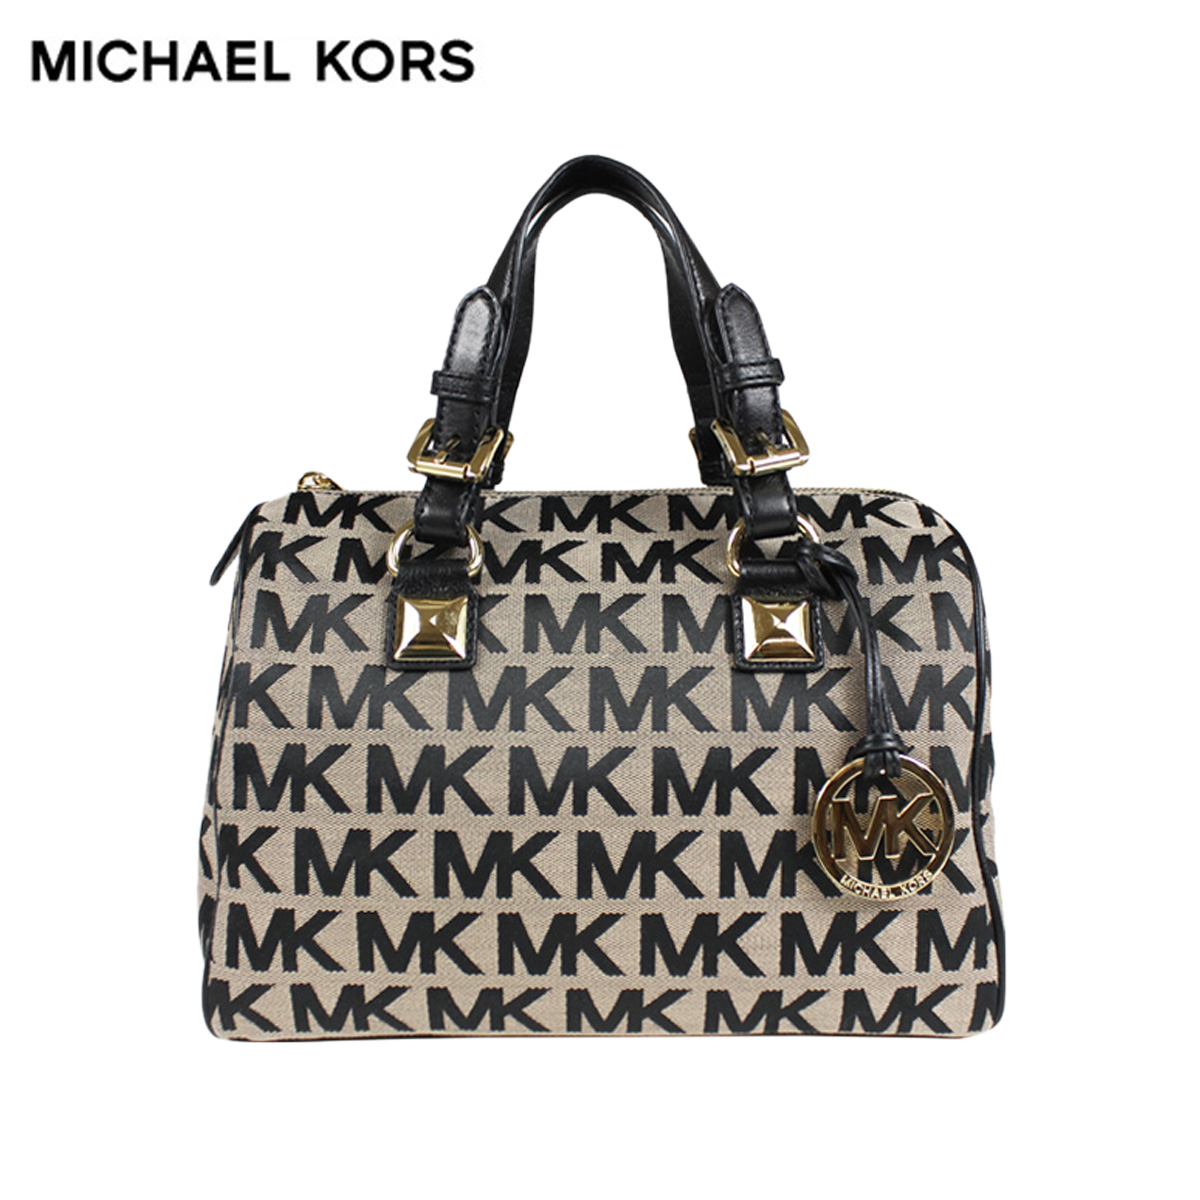 Michael Kors Bag Handbag Boston 35h4ggys2j Beige Black Lady S